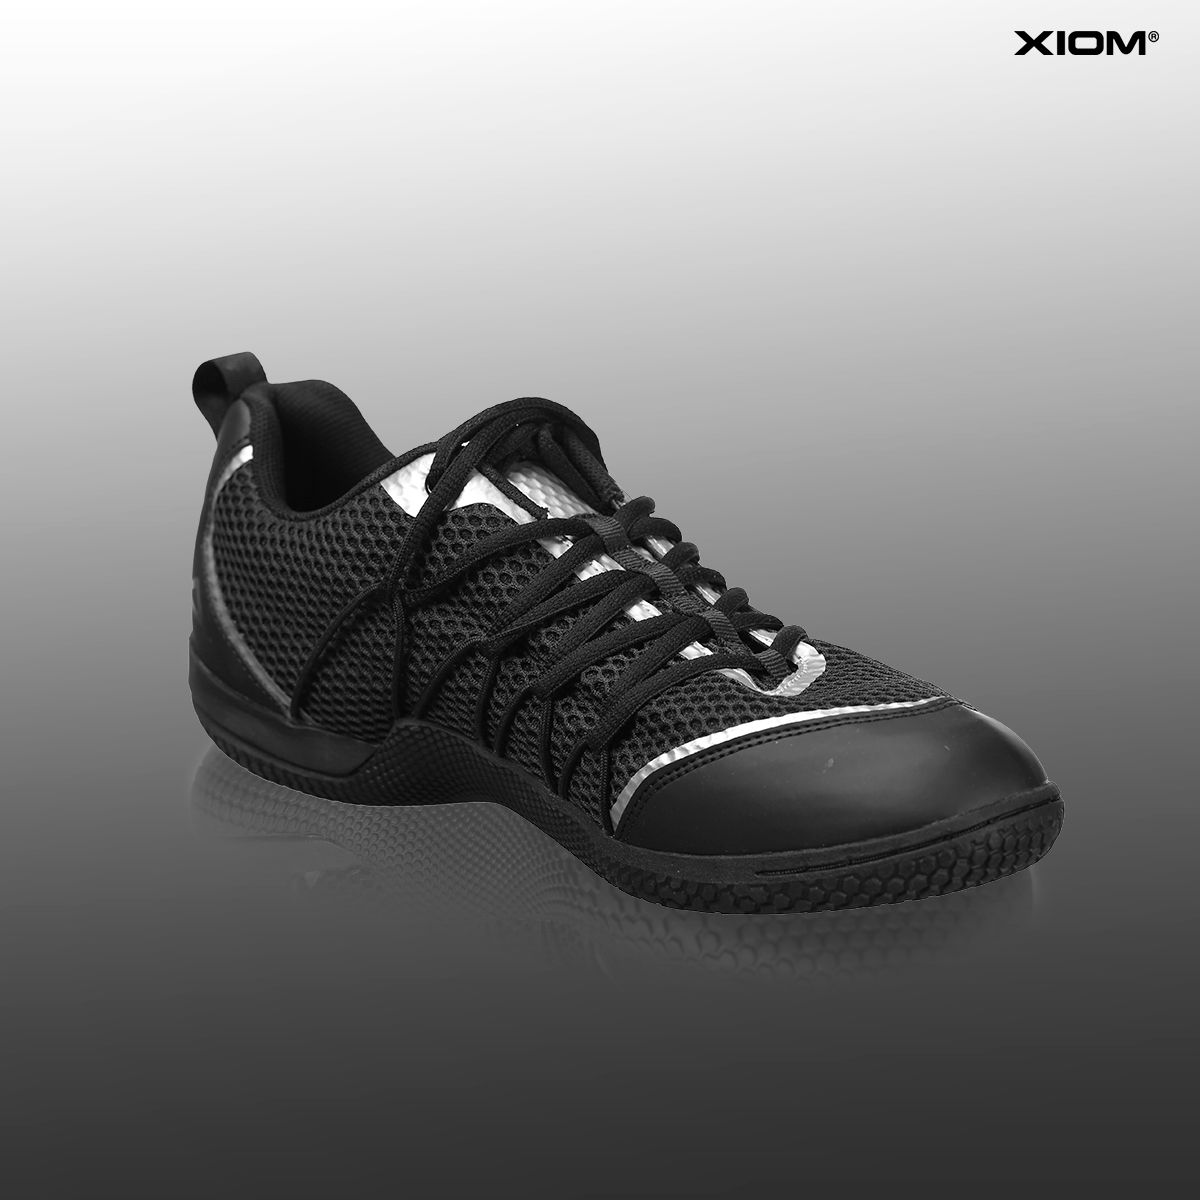 2017 XIOM's burning shoes, advanced concept FOOTWORK is